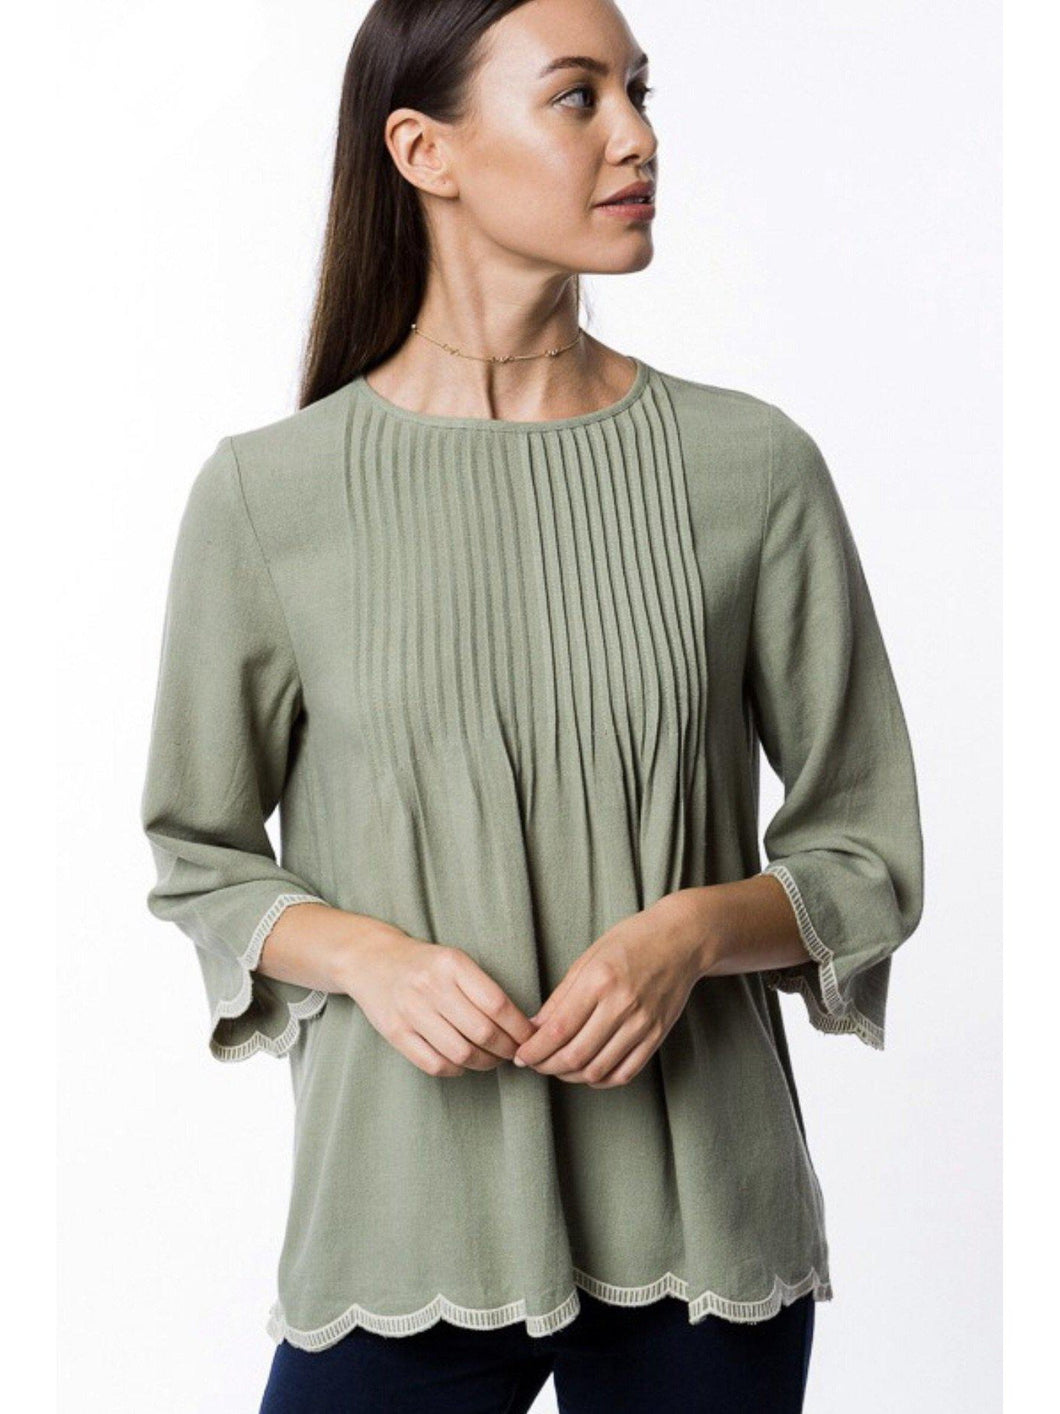 THE JODINE SCALLOPED TRIM TOP - SAGE-Shirts-j boutique